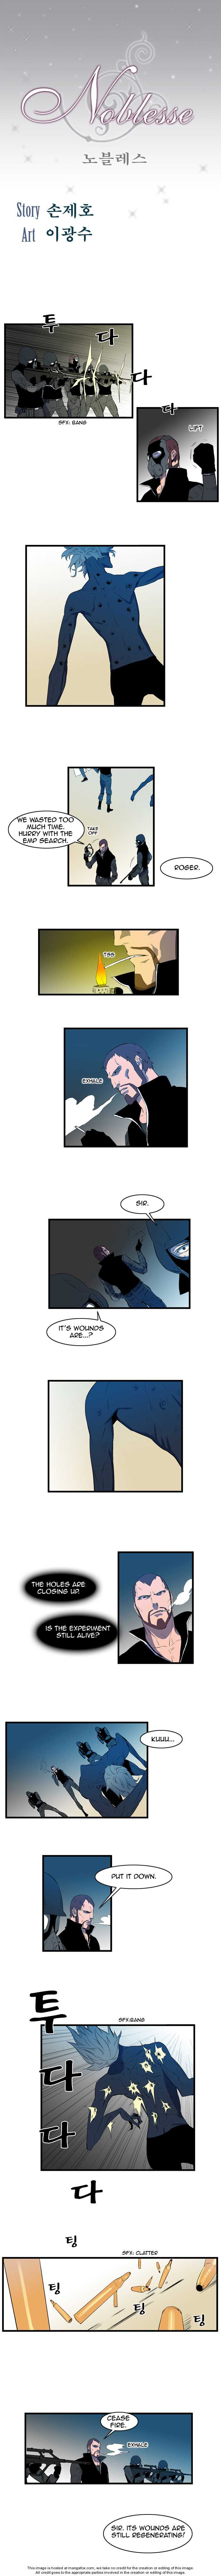 Noblesse 85 Page 1